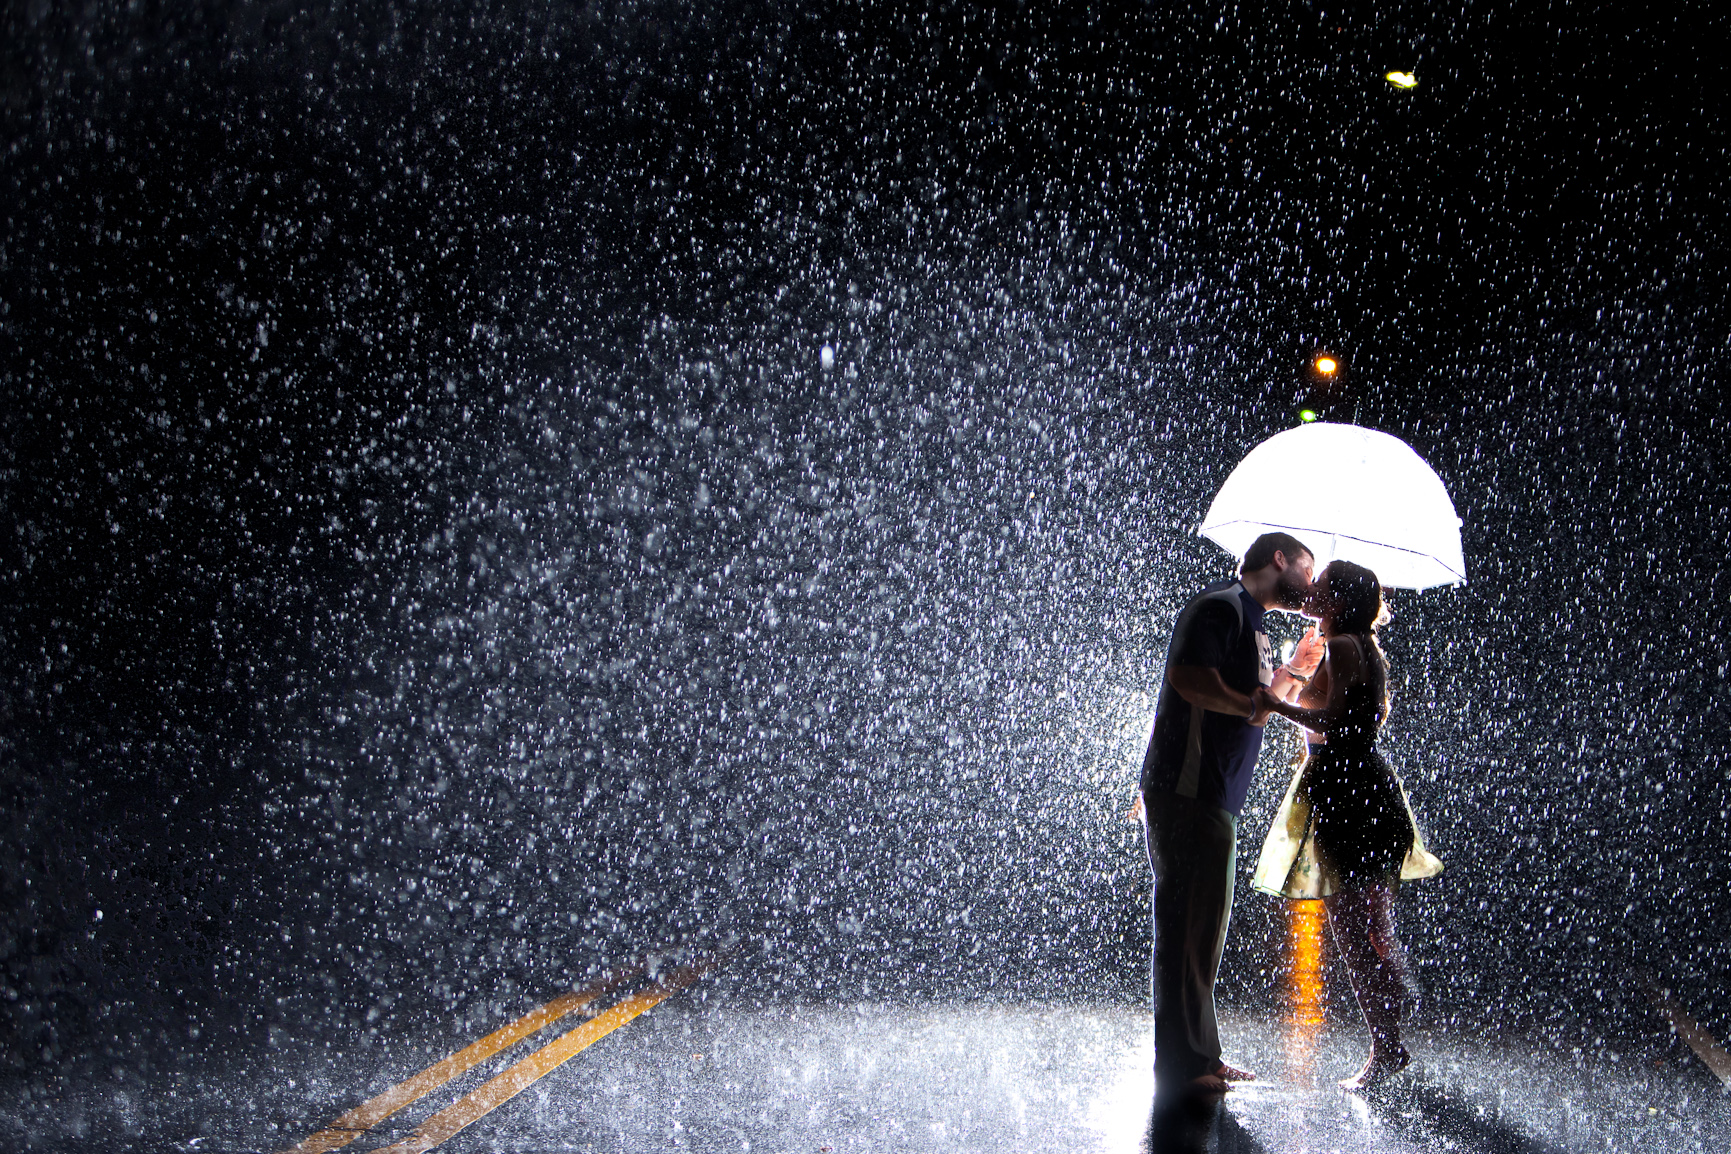 Cute Emo Love Wallpaper Dancing In The Rain Knappphotography